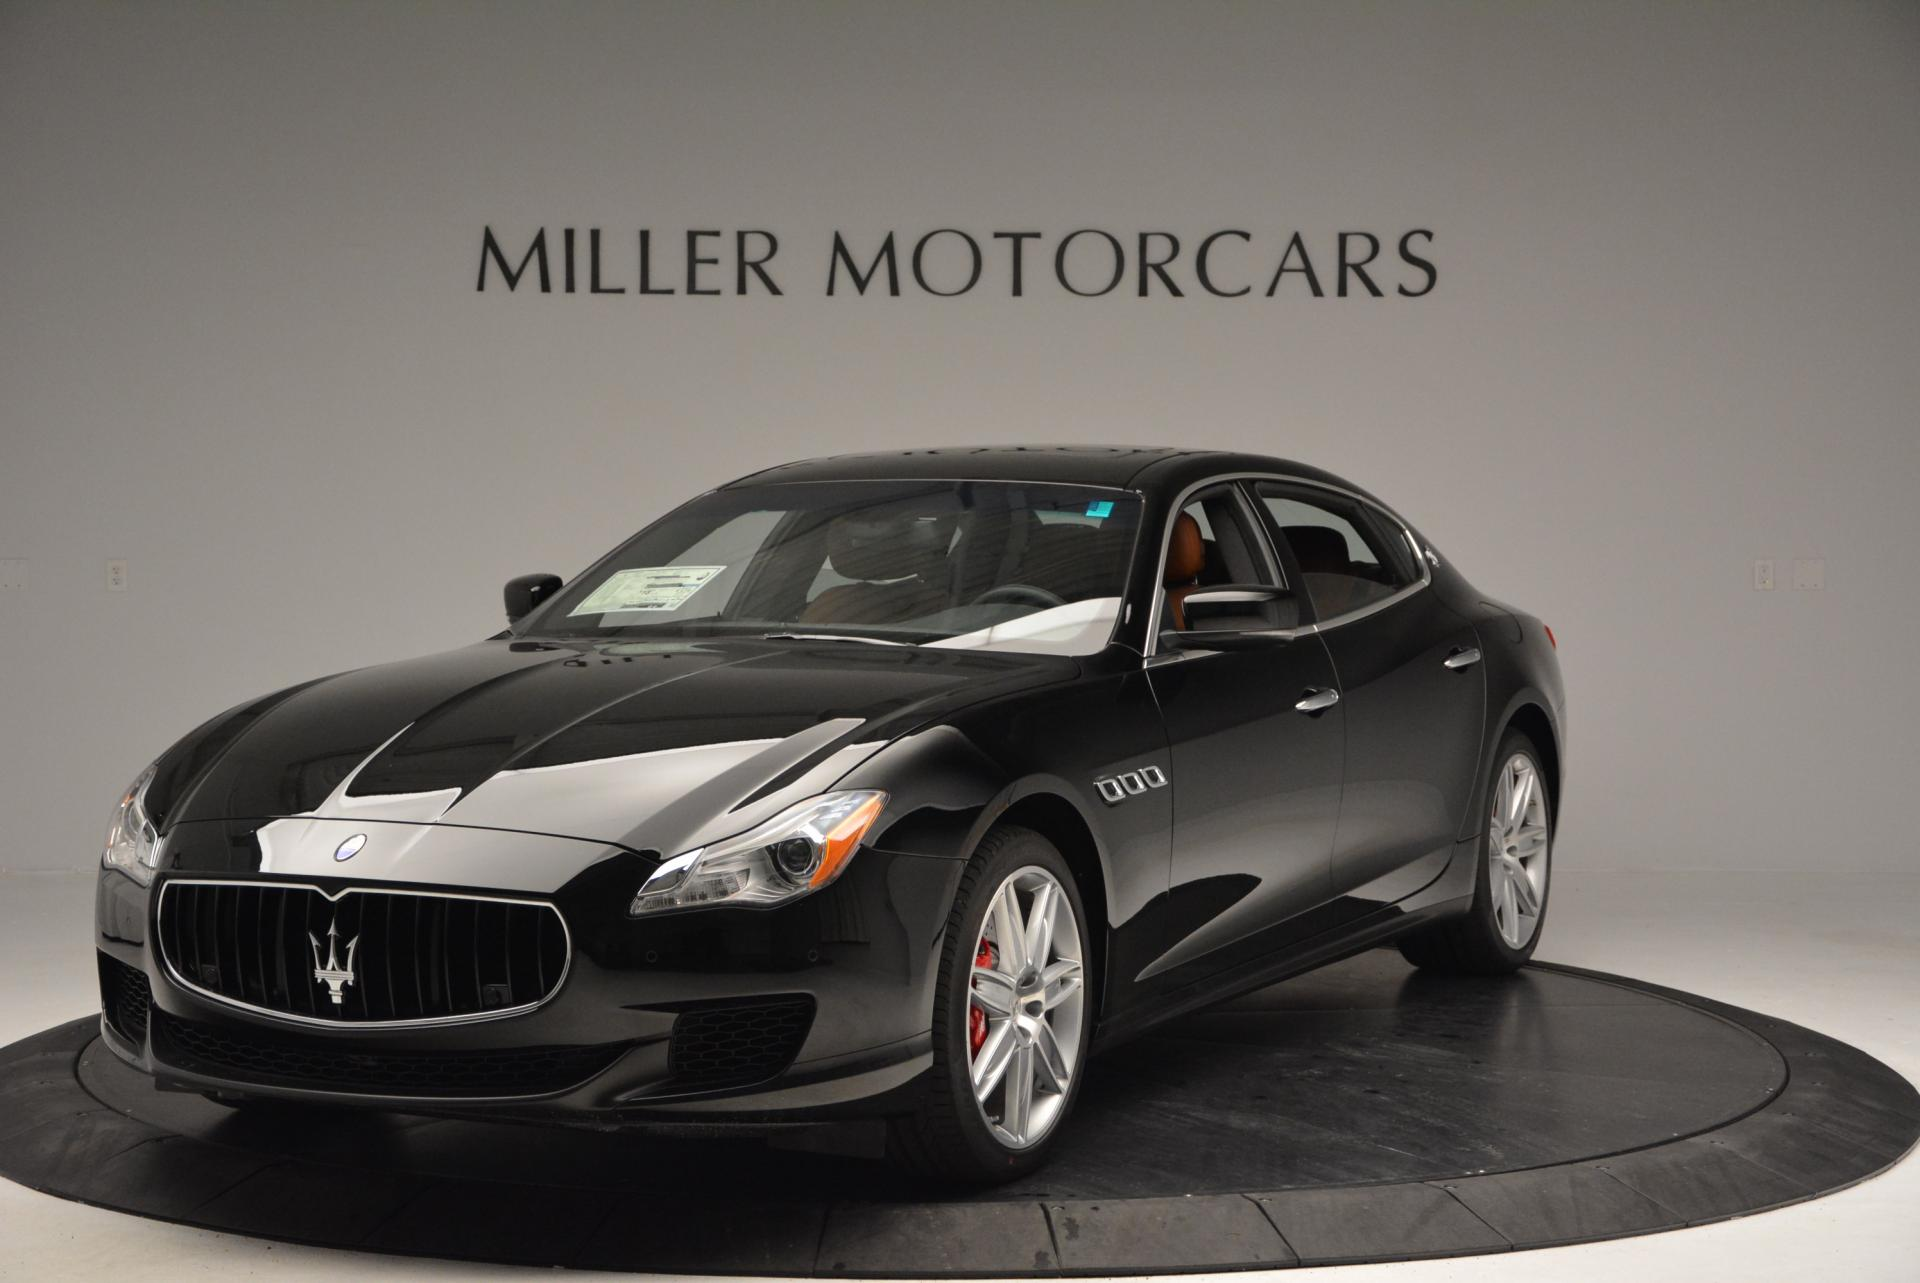 New 2016 Maserati Quattroporte S Q4 for sale Sold at Pagani of Greenwich in Greenwich CT 06830 1